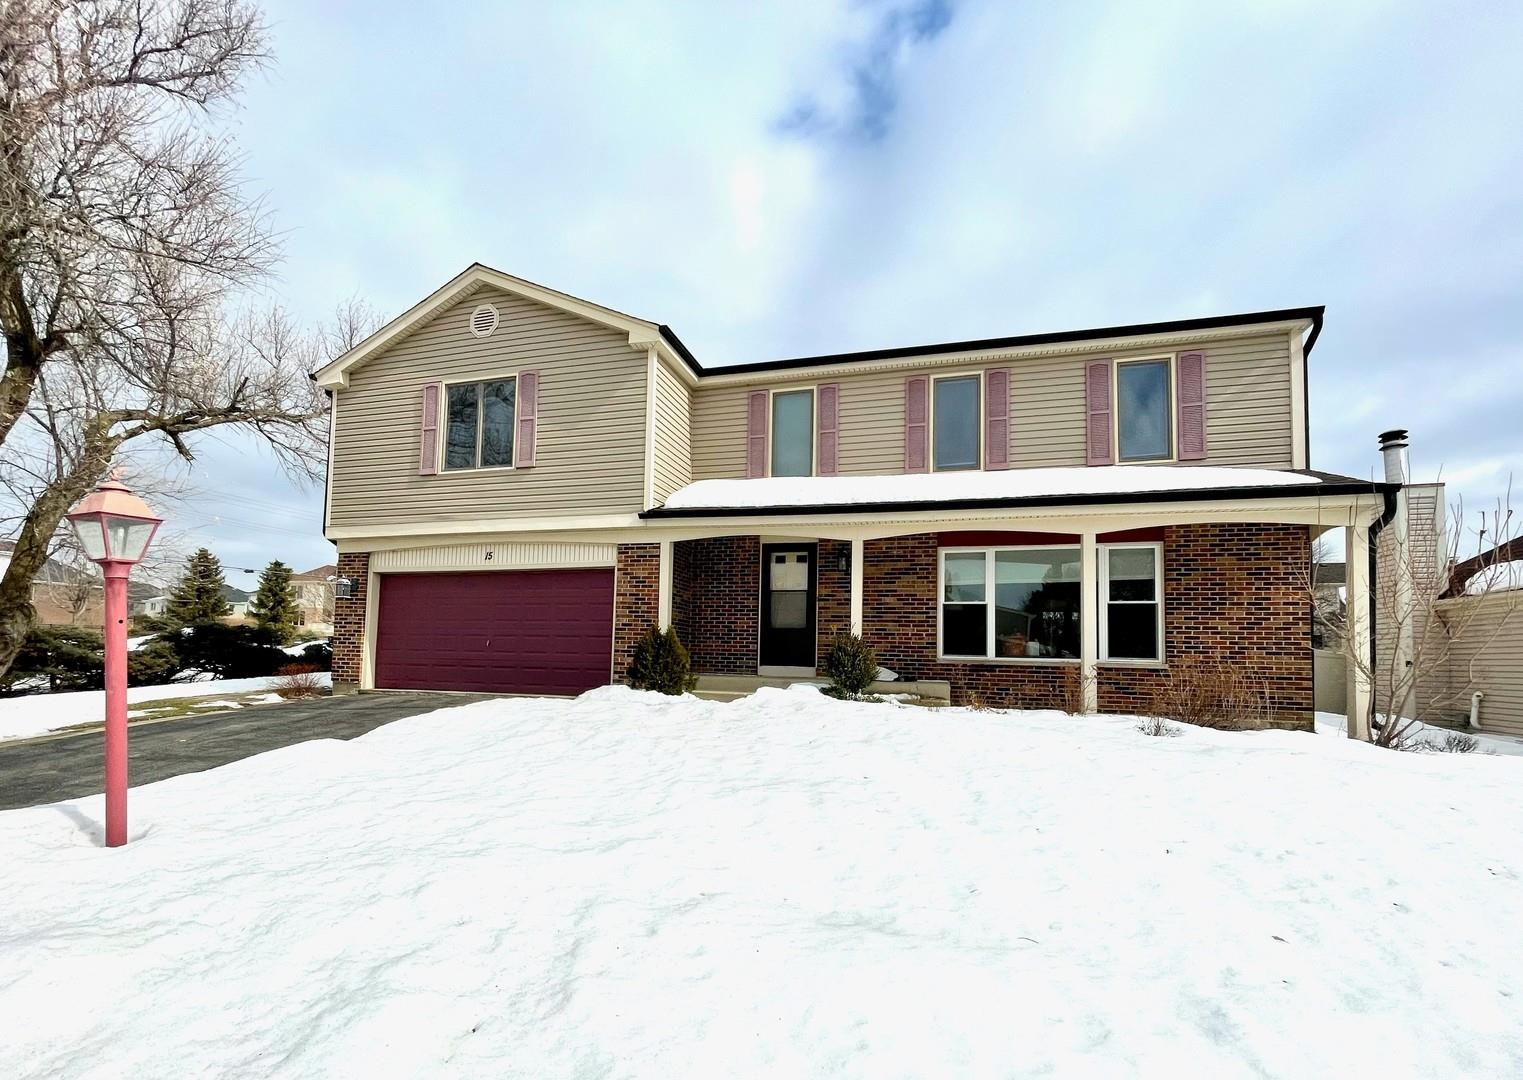 15 Andover Drive, Roselle, IL 60172 - #: 11003155